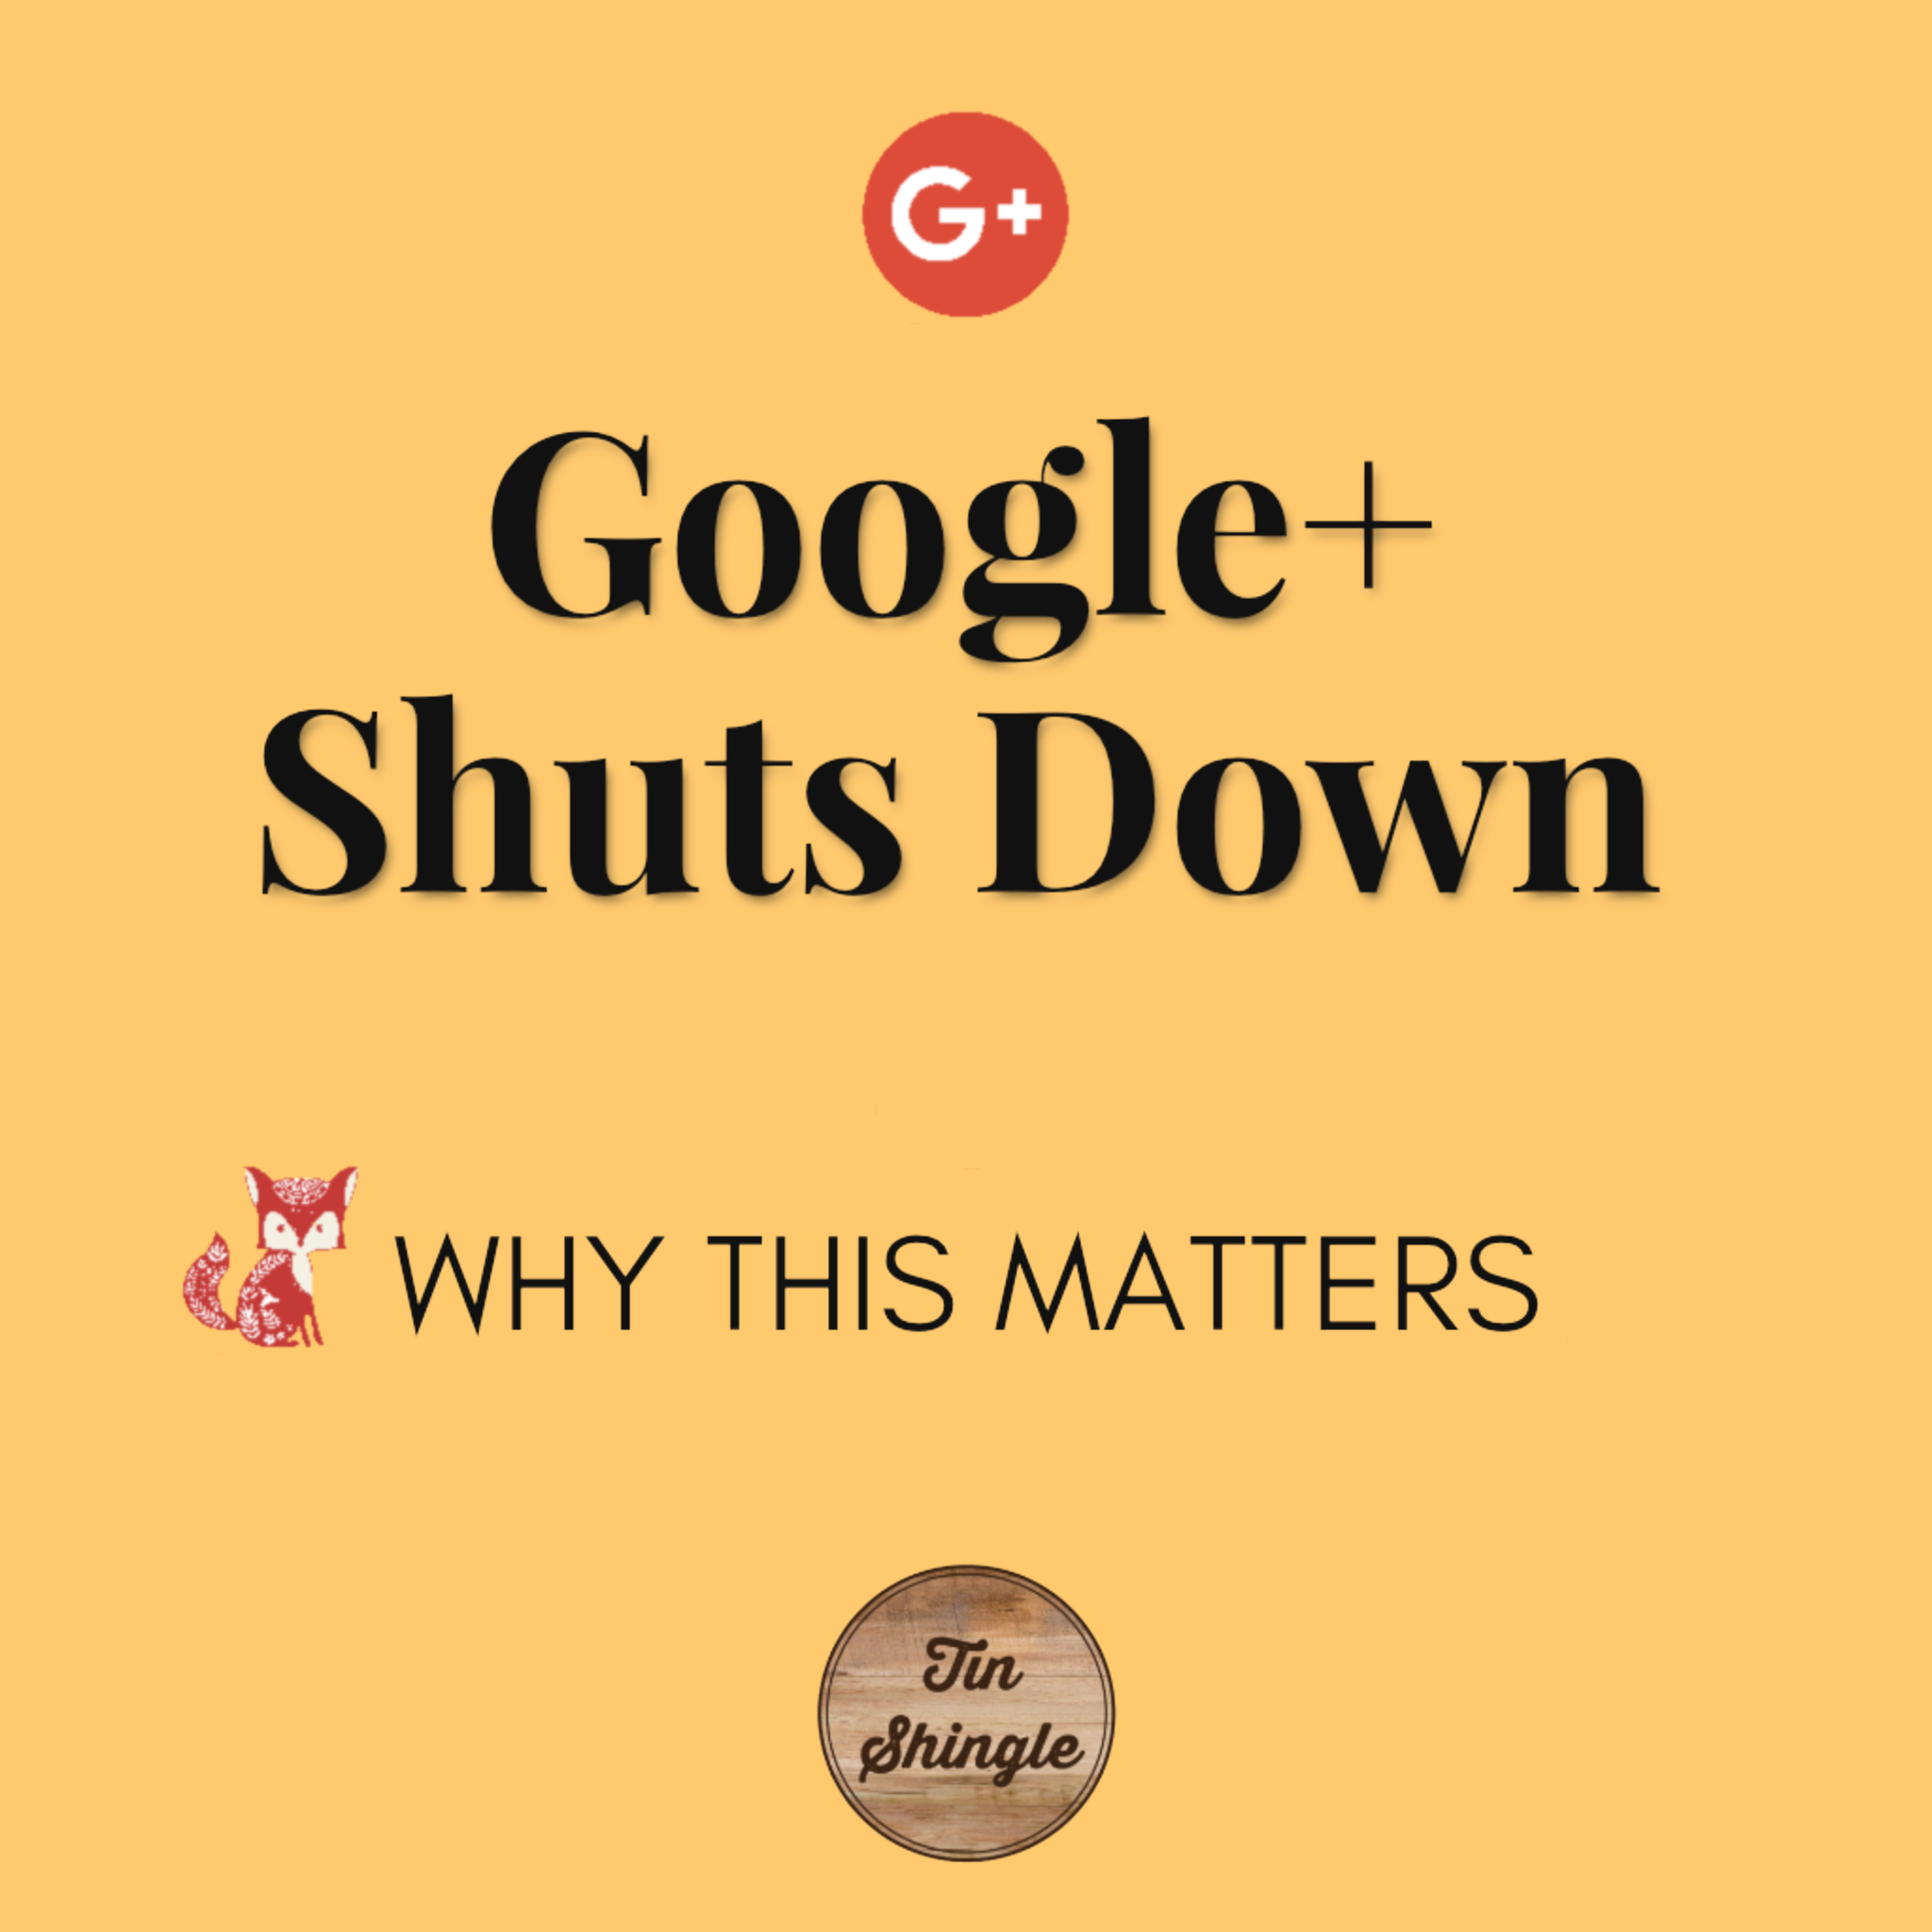 google+ shuts down why this matters.PNG